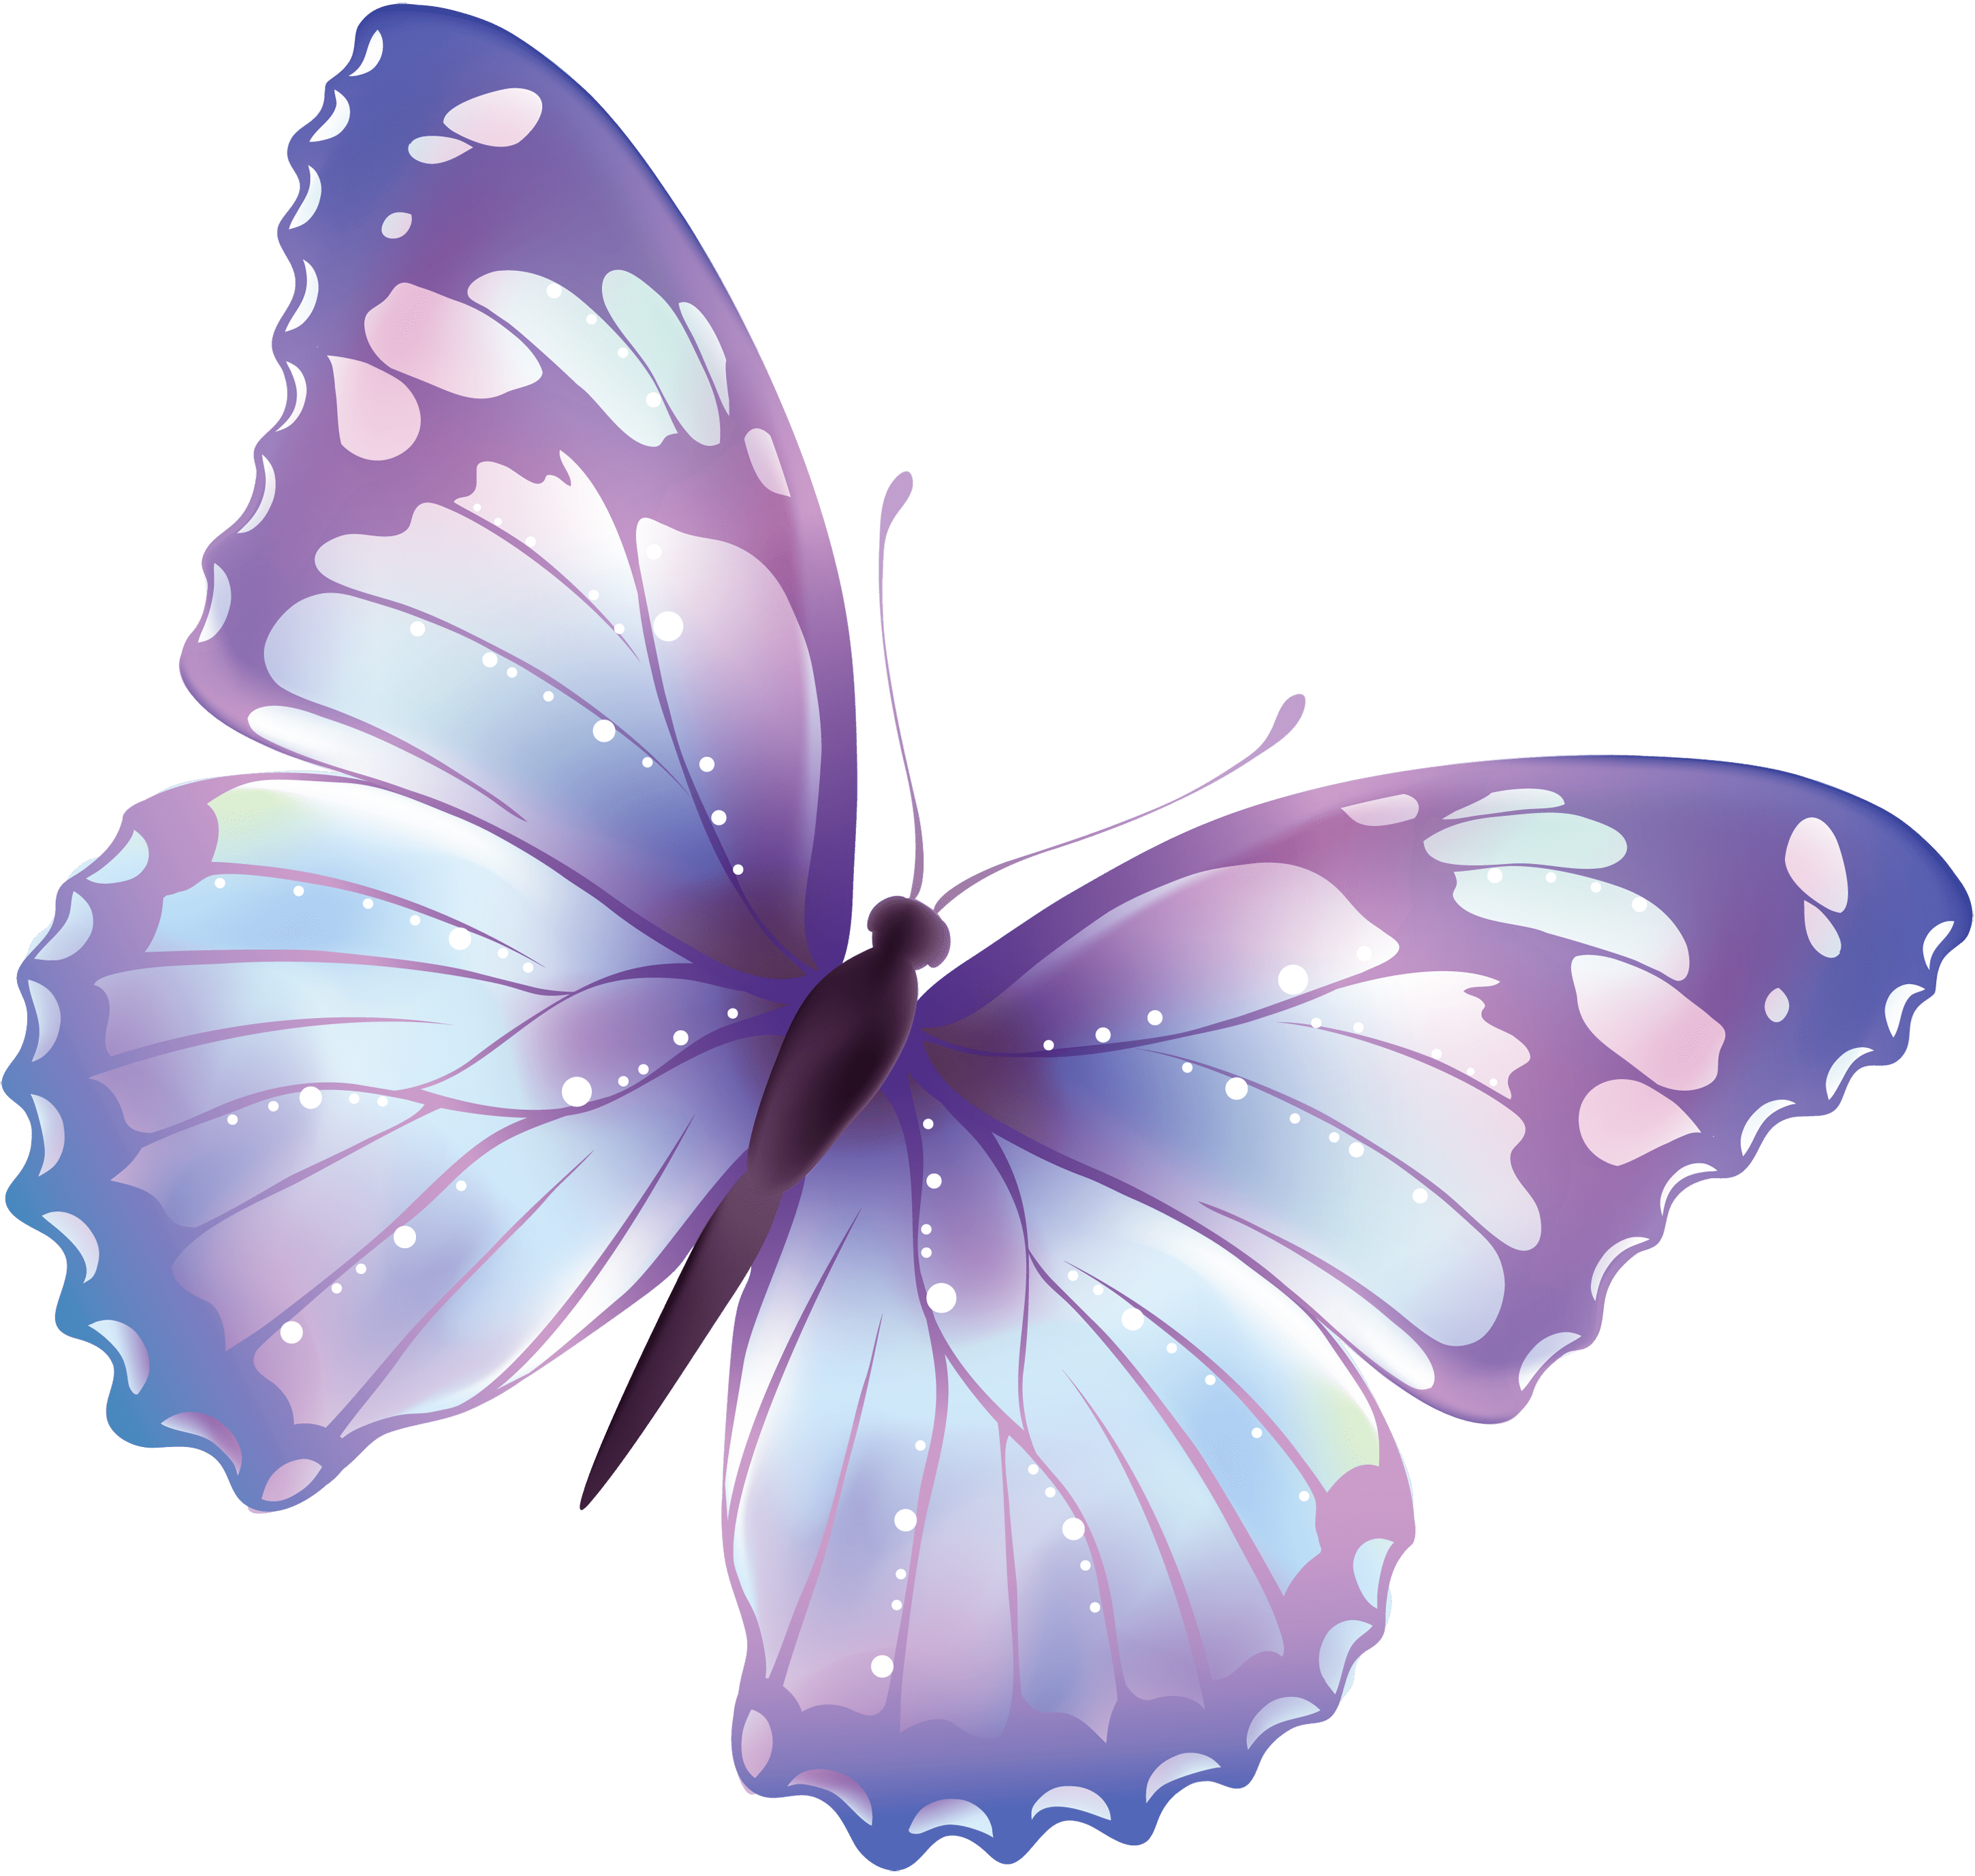 Clipart butterfly 3 butterfly images clip art 1920 1600 jpeg - Clipart Butterfly 3 Butterfly Images Clip Art 1920 1600 Jpeg Filename Butterfly Png 3 Png Download